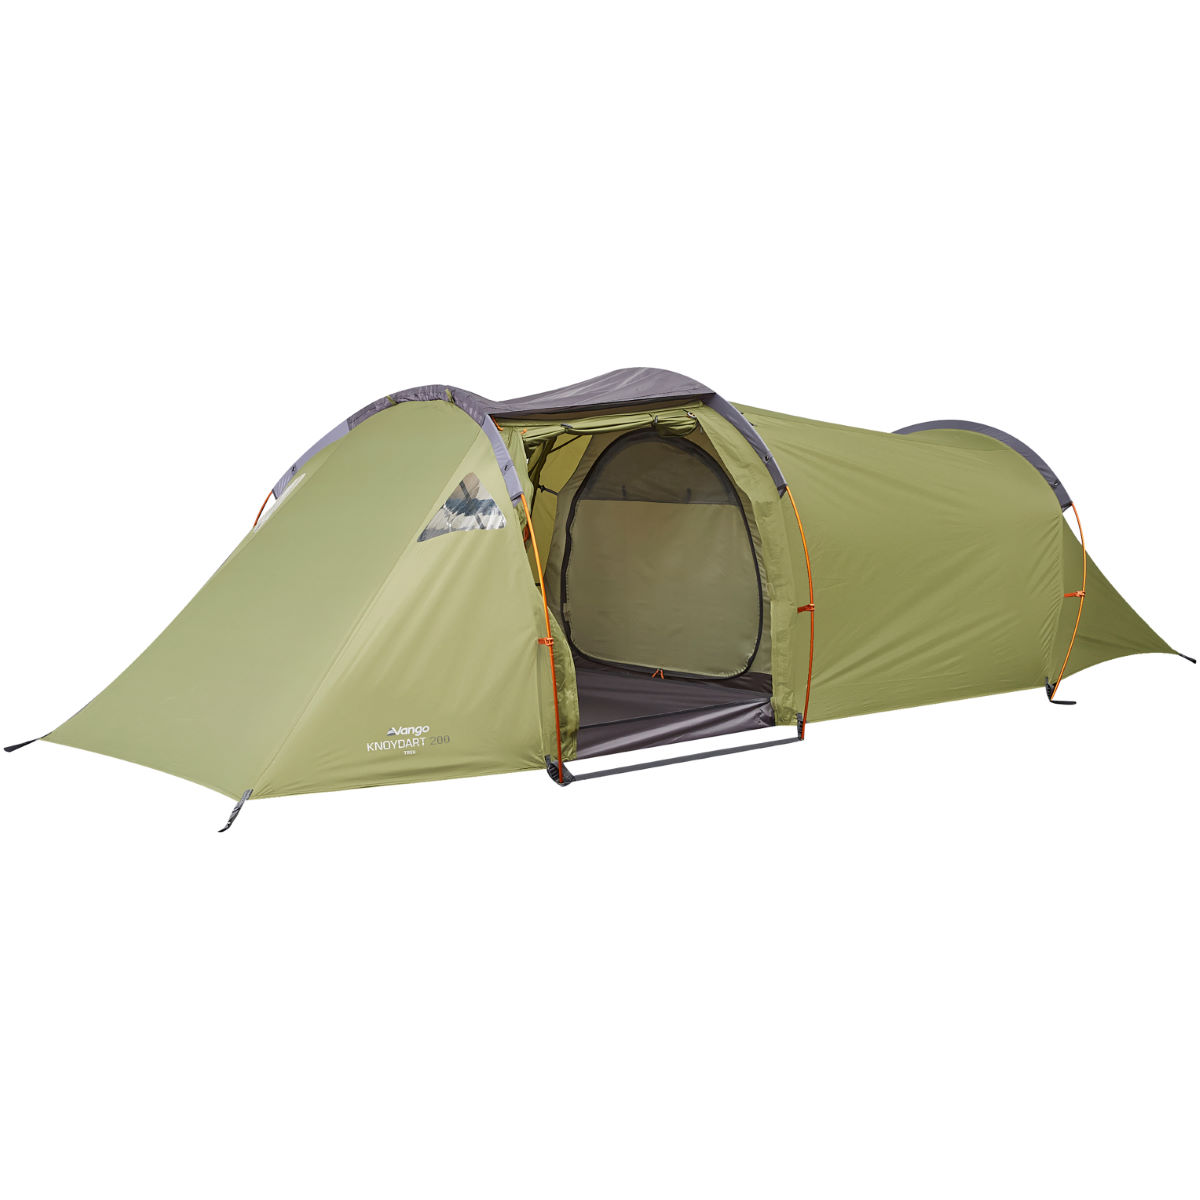 Vango Vango Knoydart 200 Two Person Tent   Tents